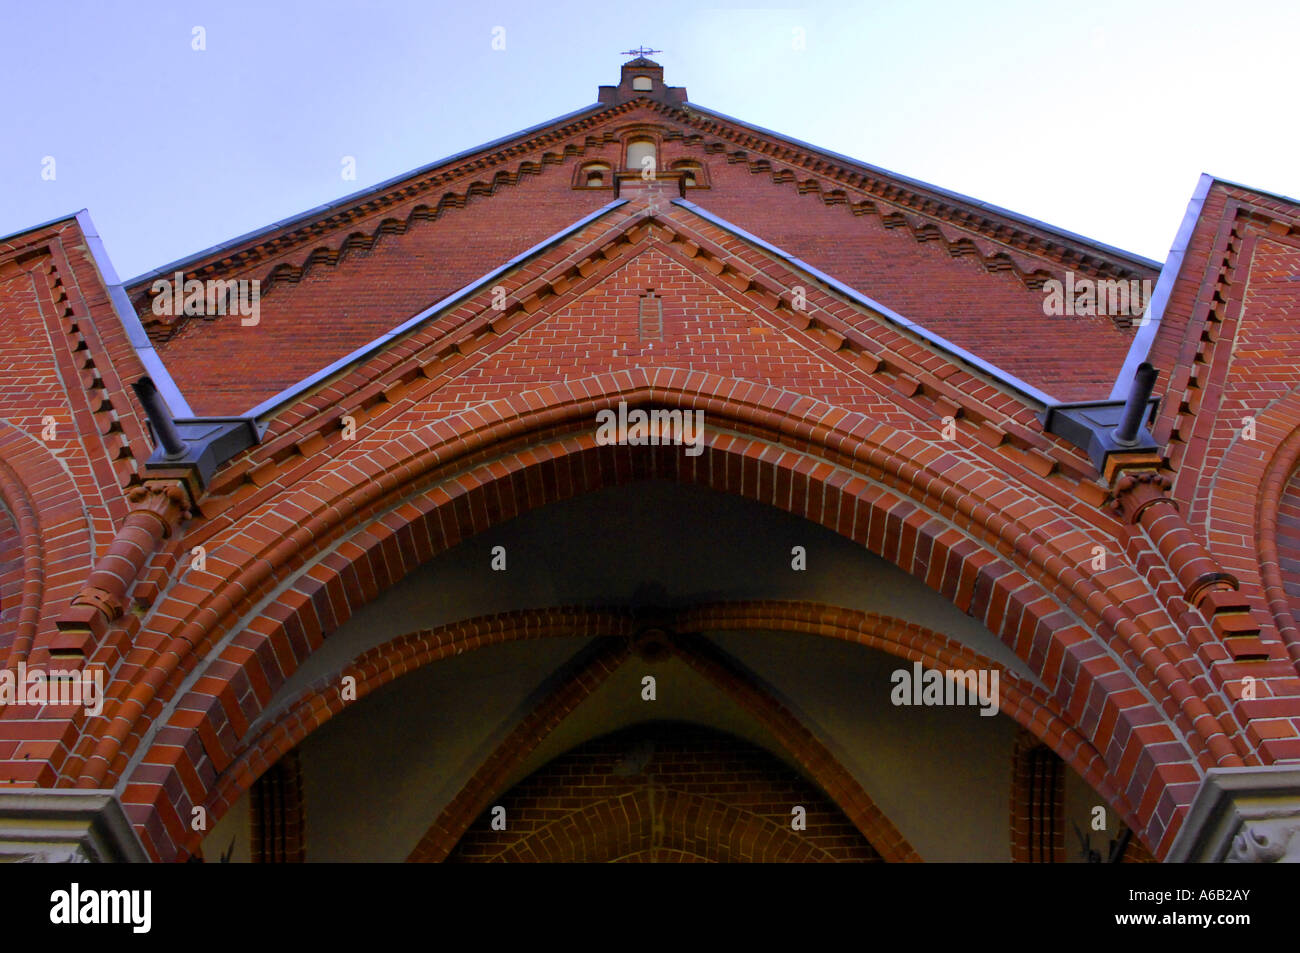 Elegant Red Brick Archway Church Building Architecture Arc Arch Design German  Germany Deutschland Horizontal